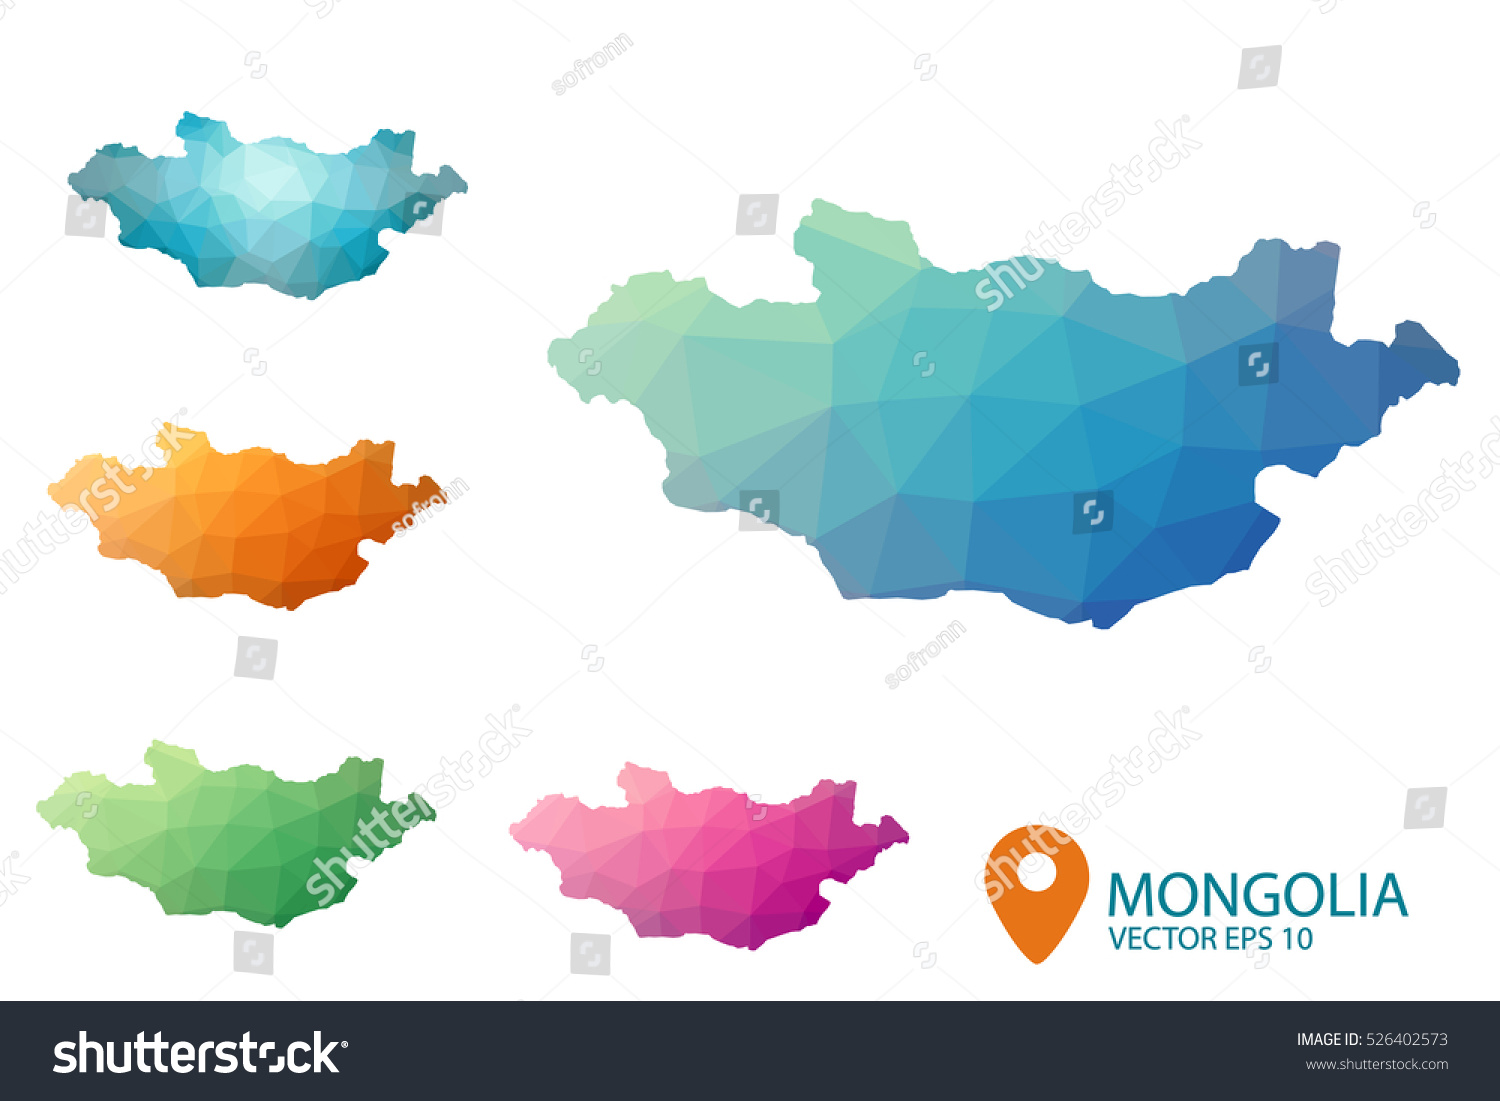 Vector Map Mongolia Country Colored Bit Map - Mongolia map vector